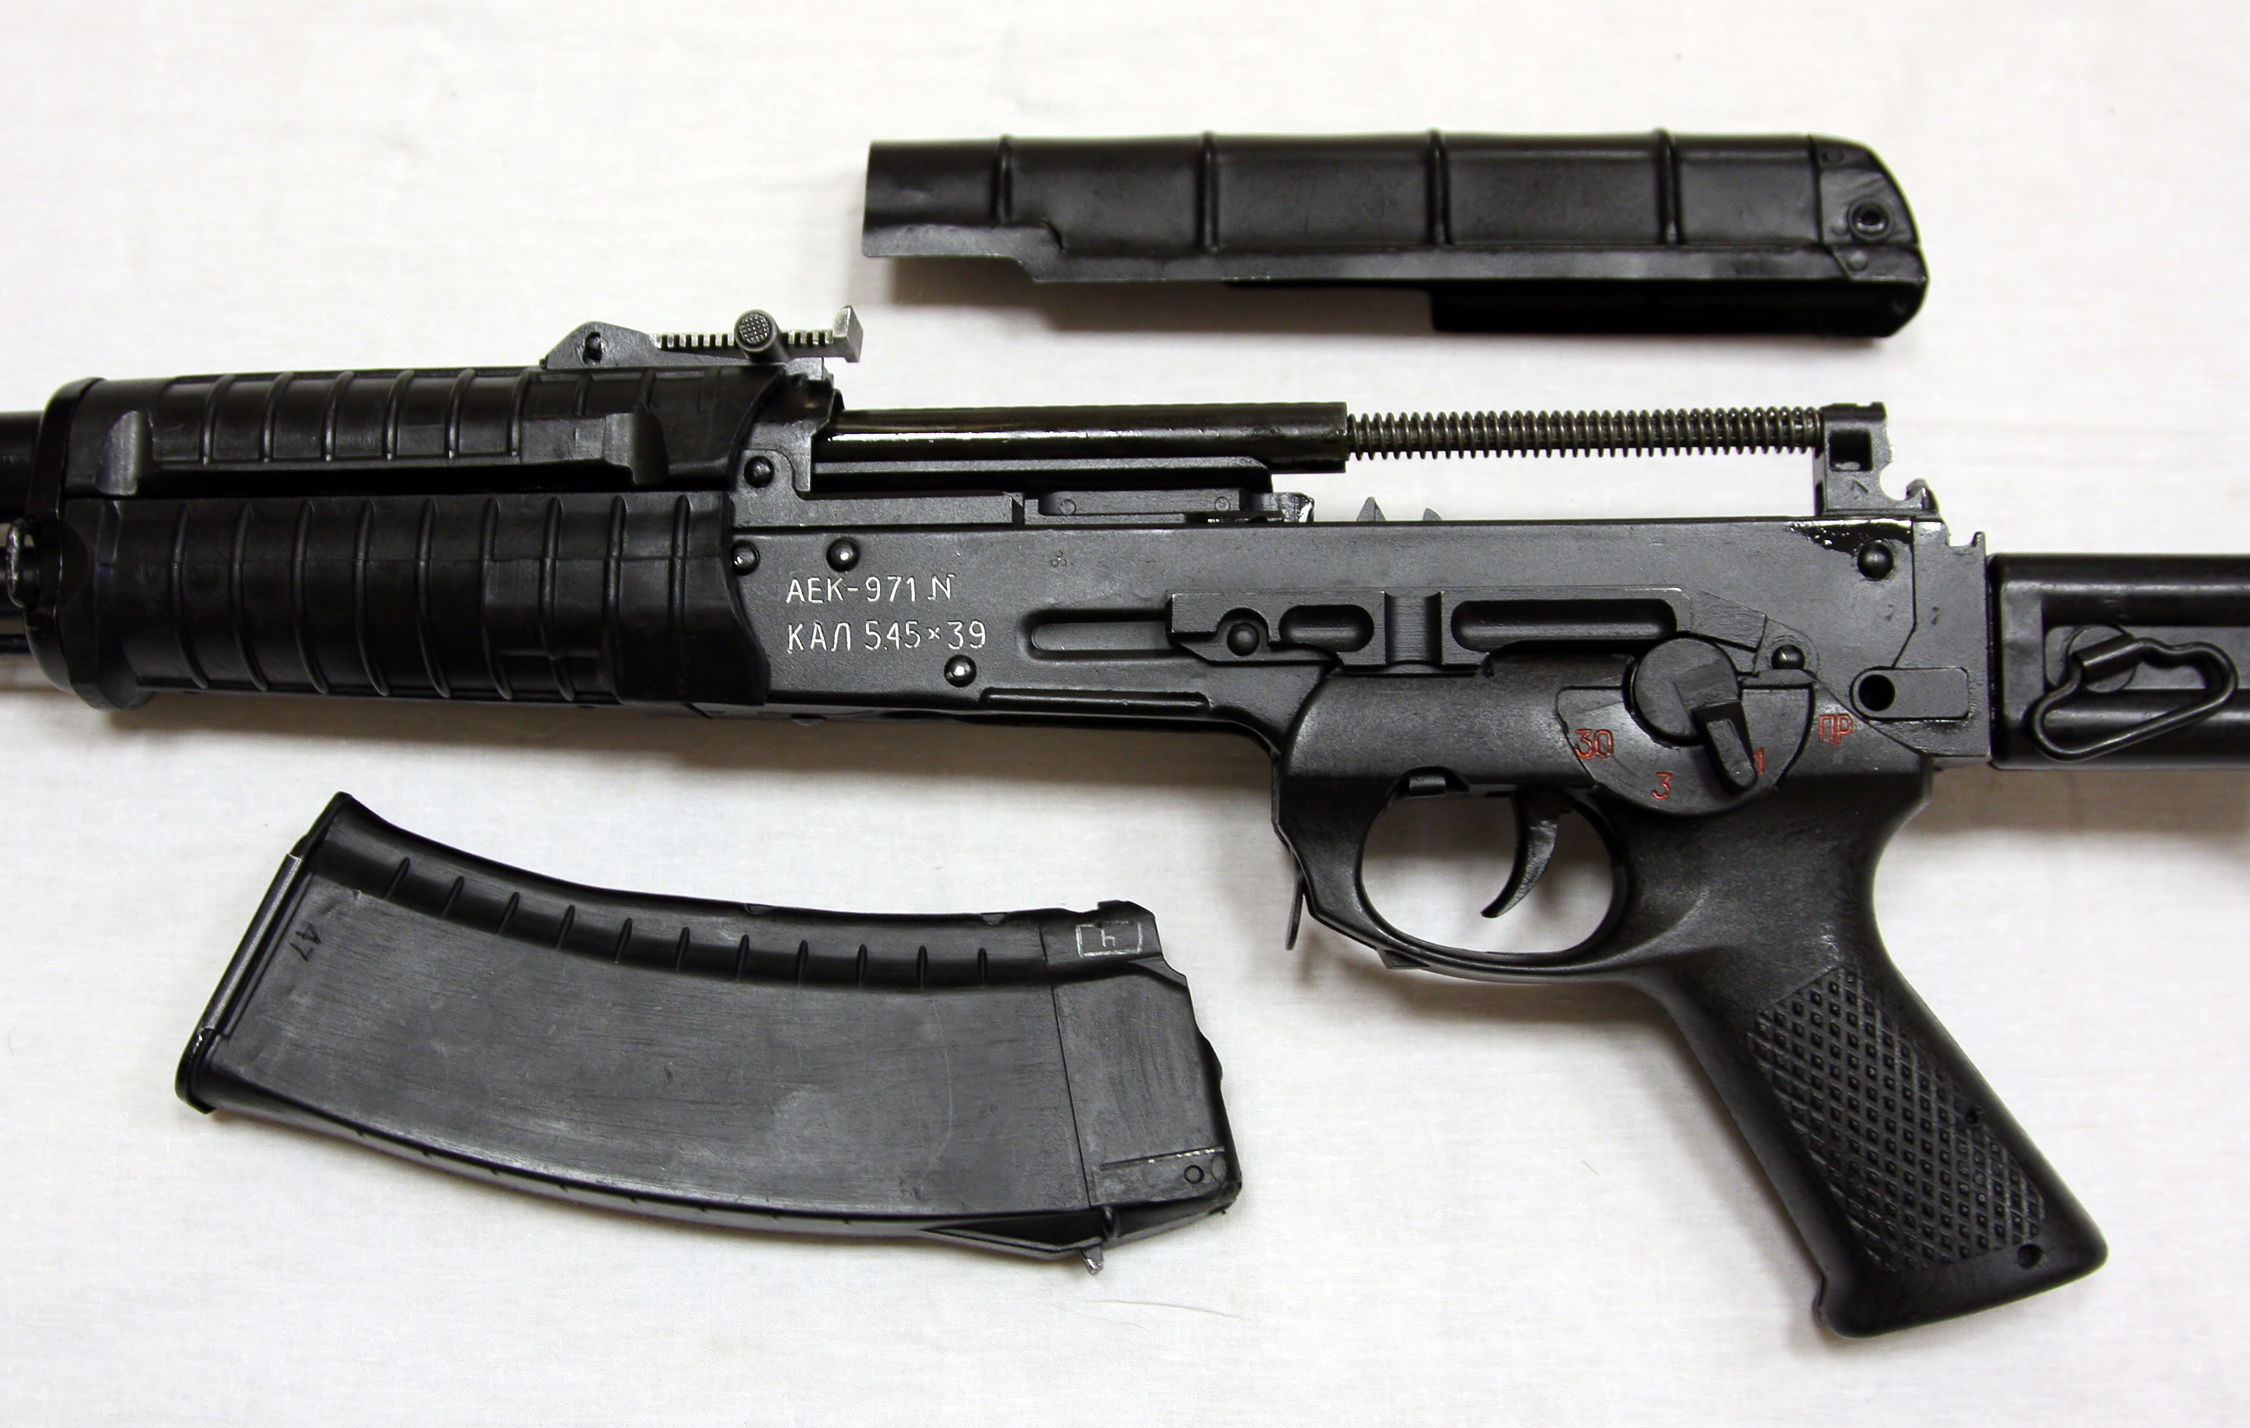 File:AEK-971 51 copy.jpg